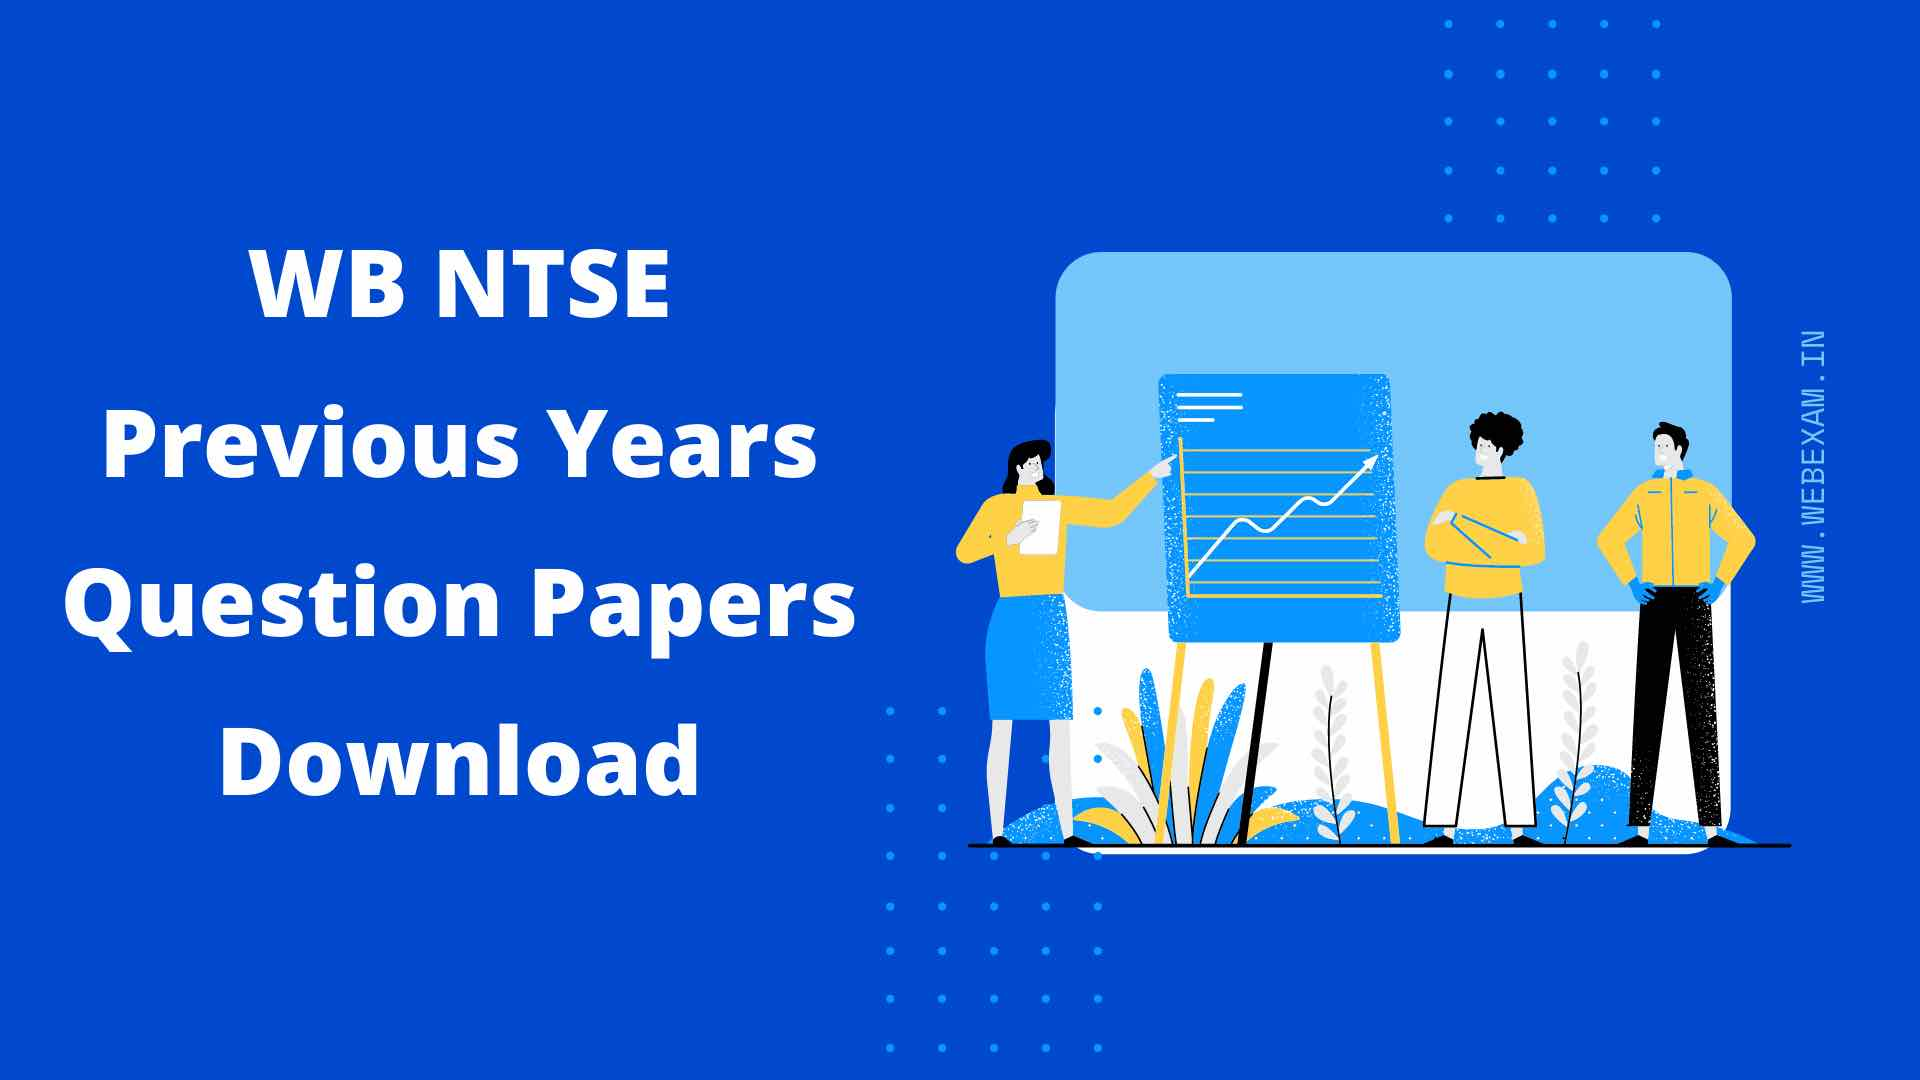 West Bengal NTSE Previous Years Question Papers Download - WB NTSE Scholarship Exam